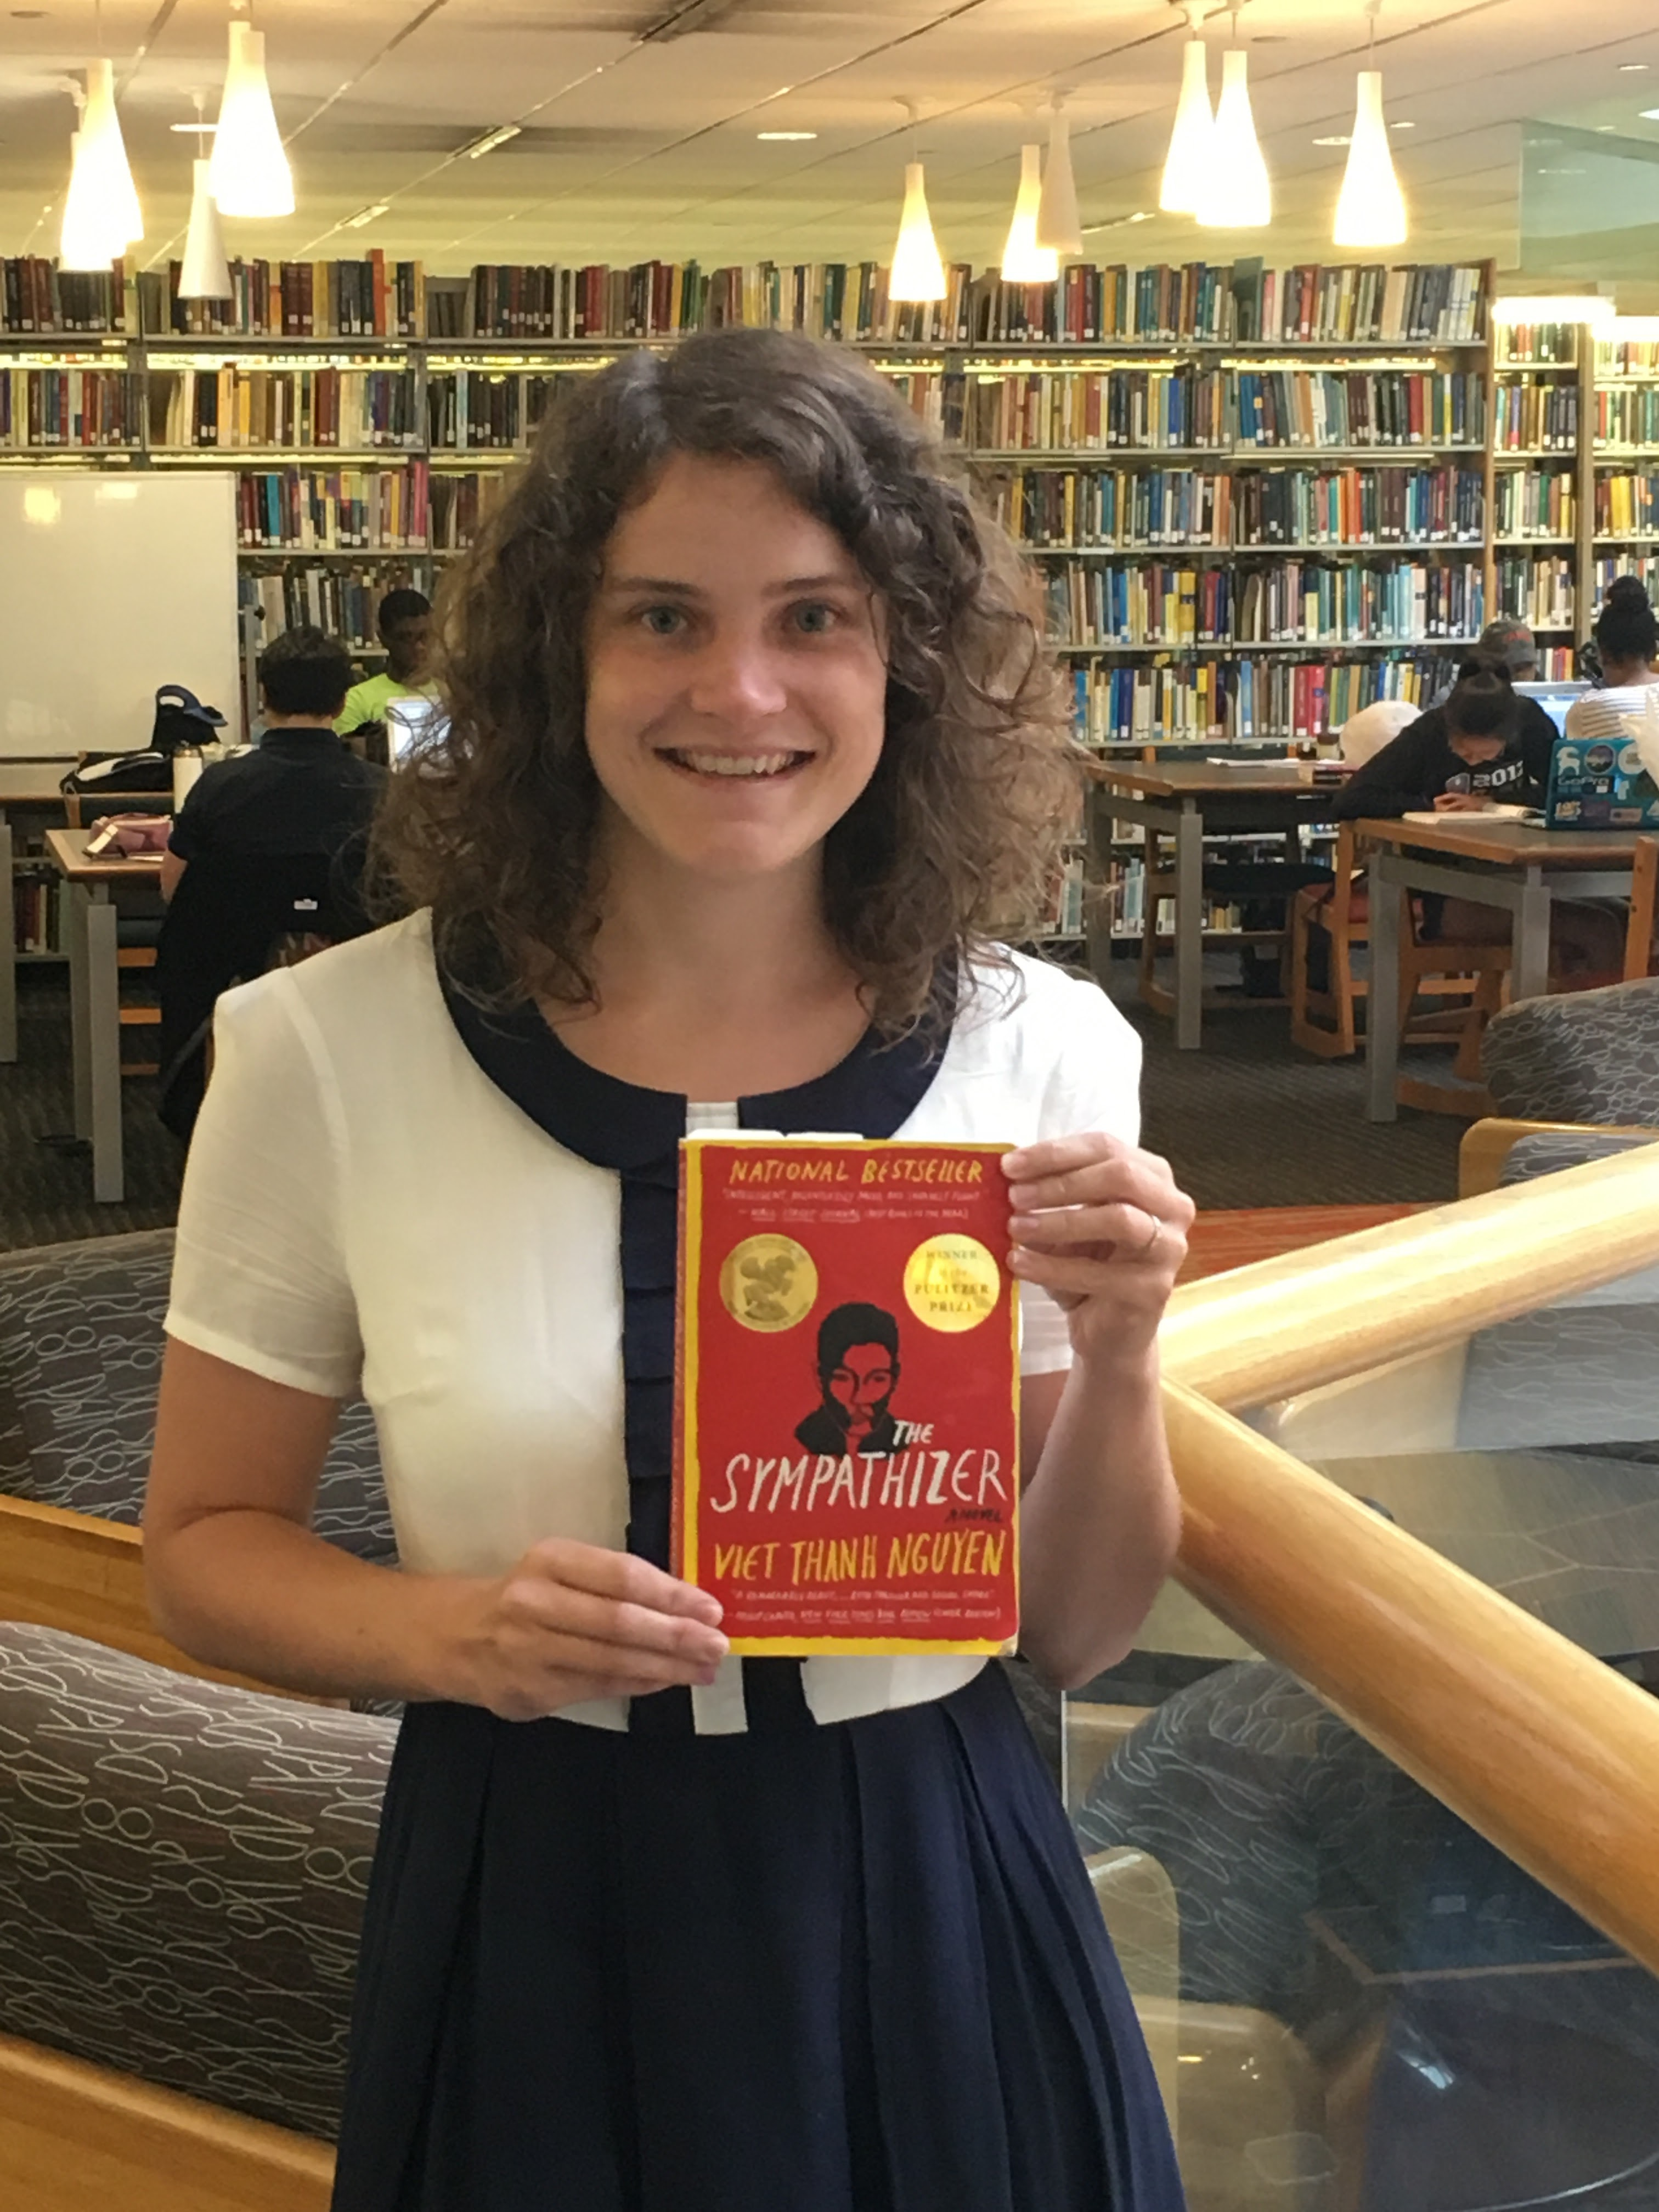 Sarah Rich holds a copy of the book 'The Sympathizer' by Viet Thanh Nguyen